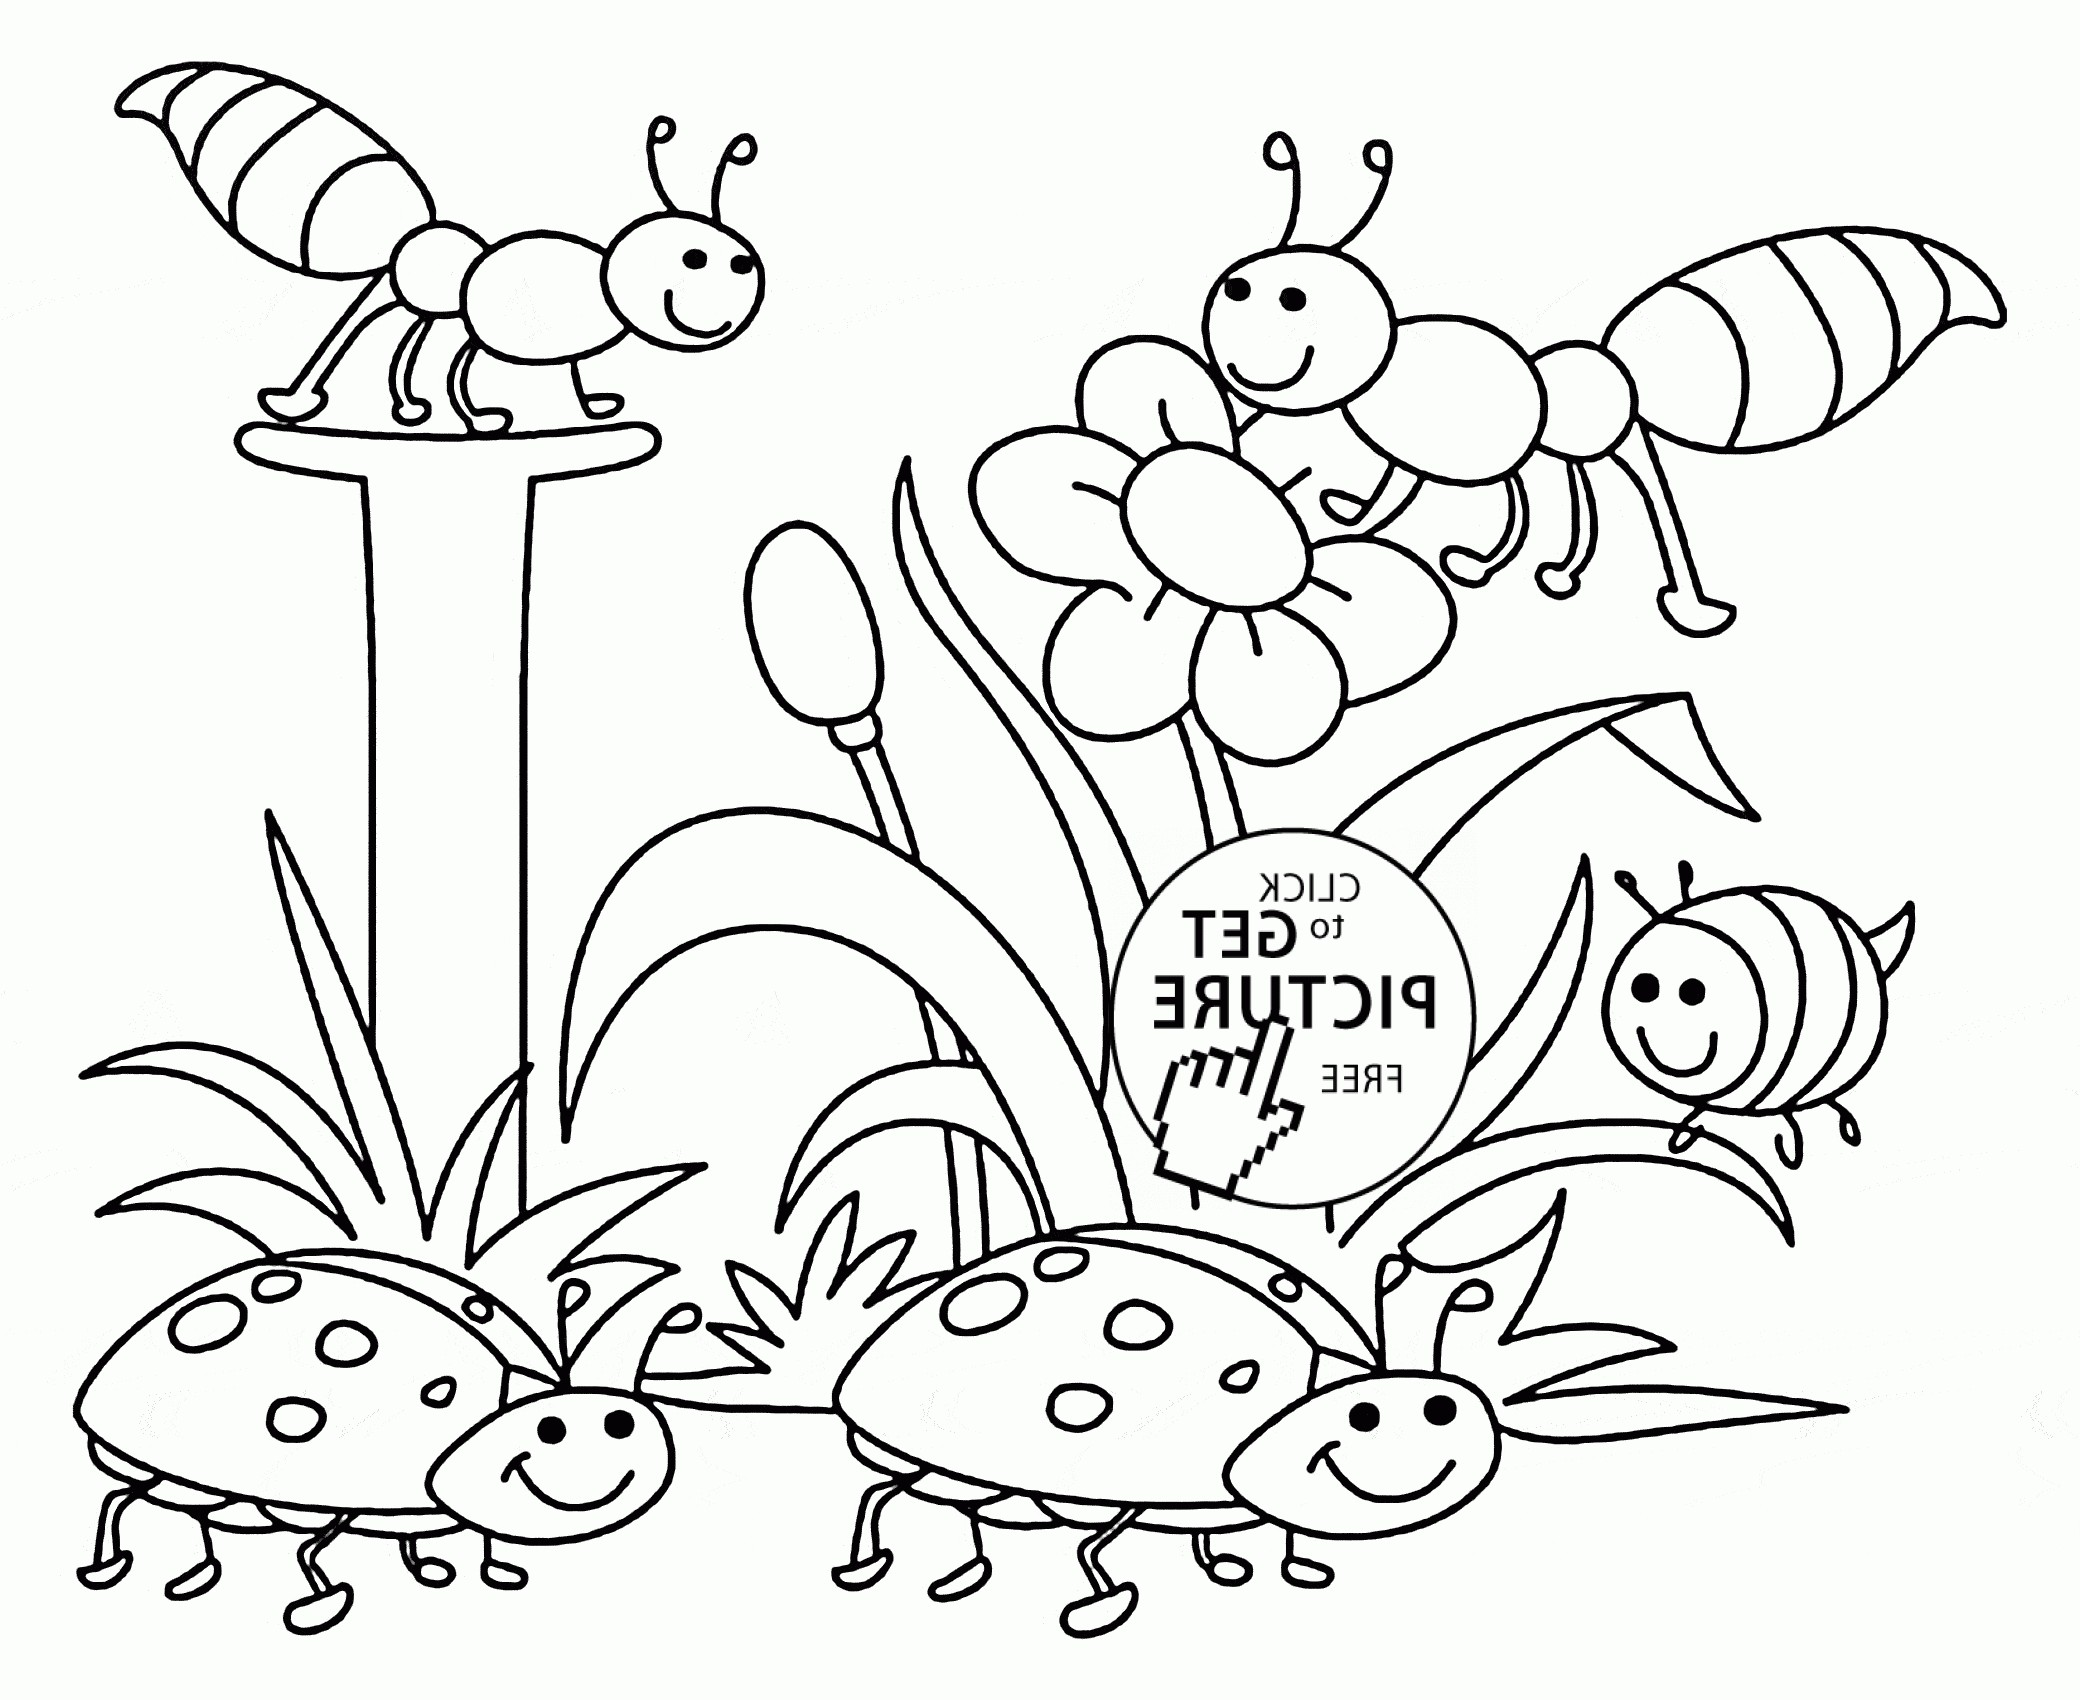 2080x1700 Palma And Monkey Nature Coloring Page For Kids Awesome Nature